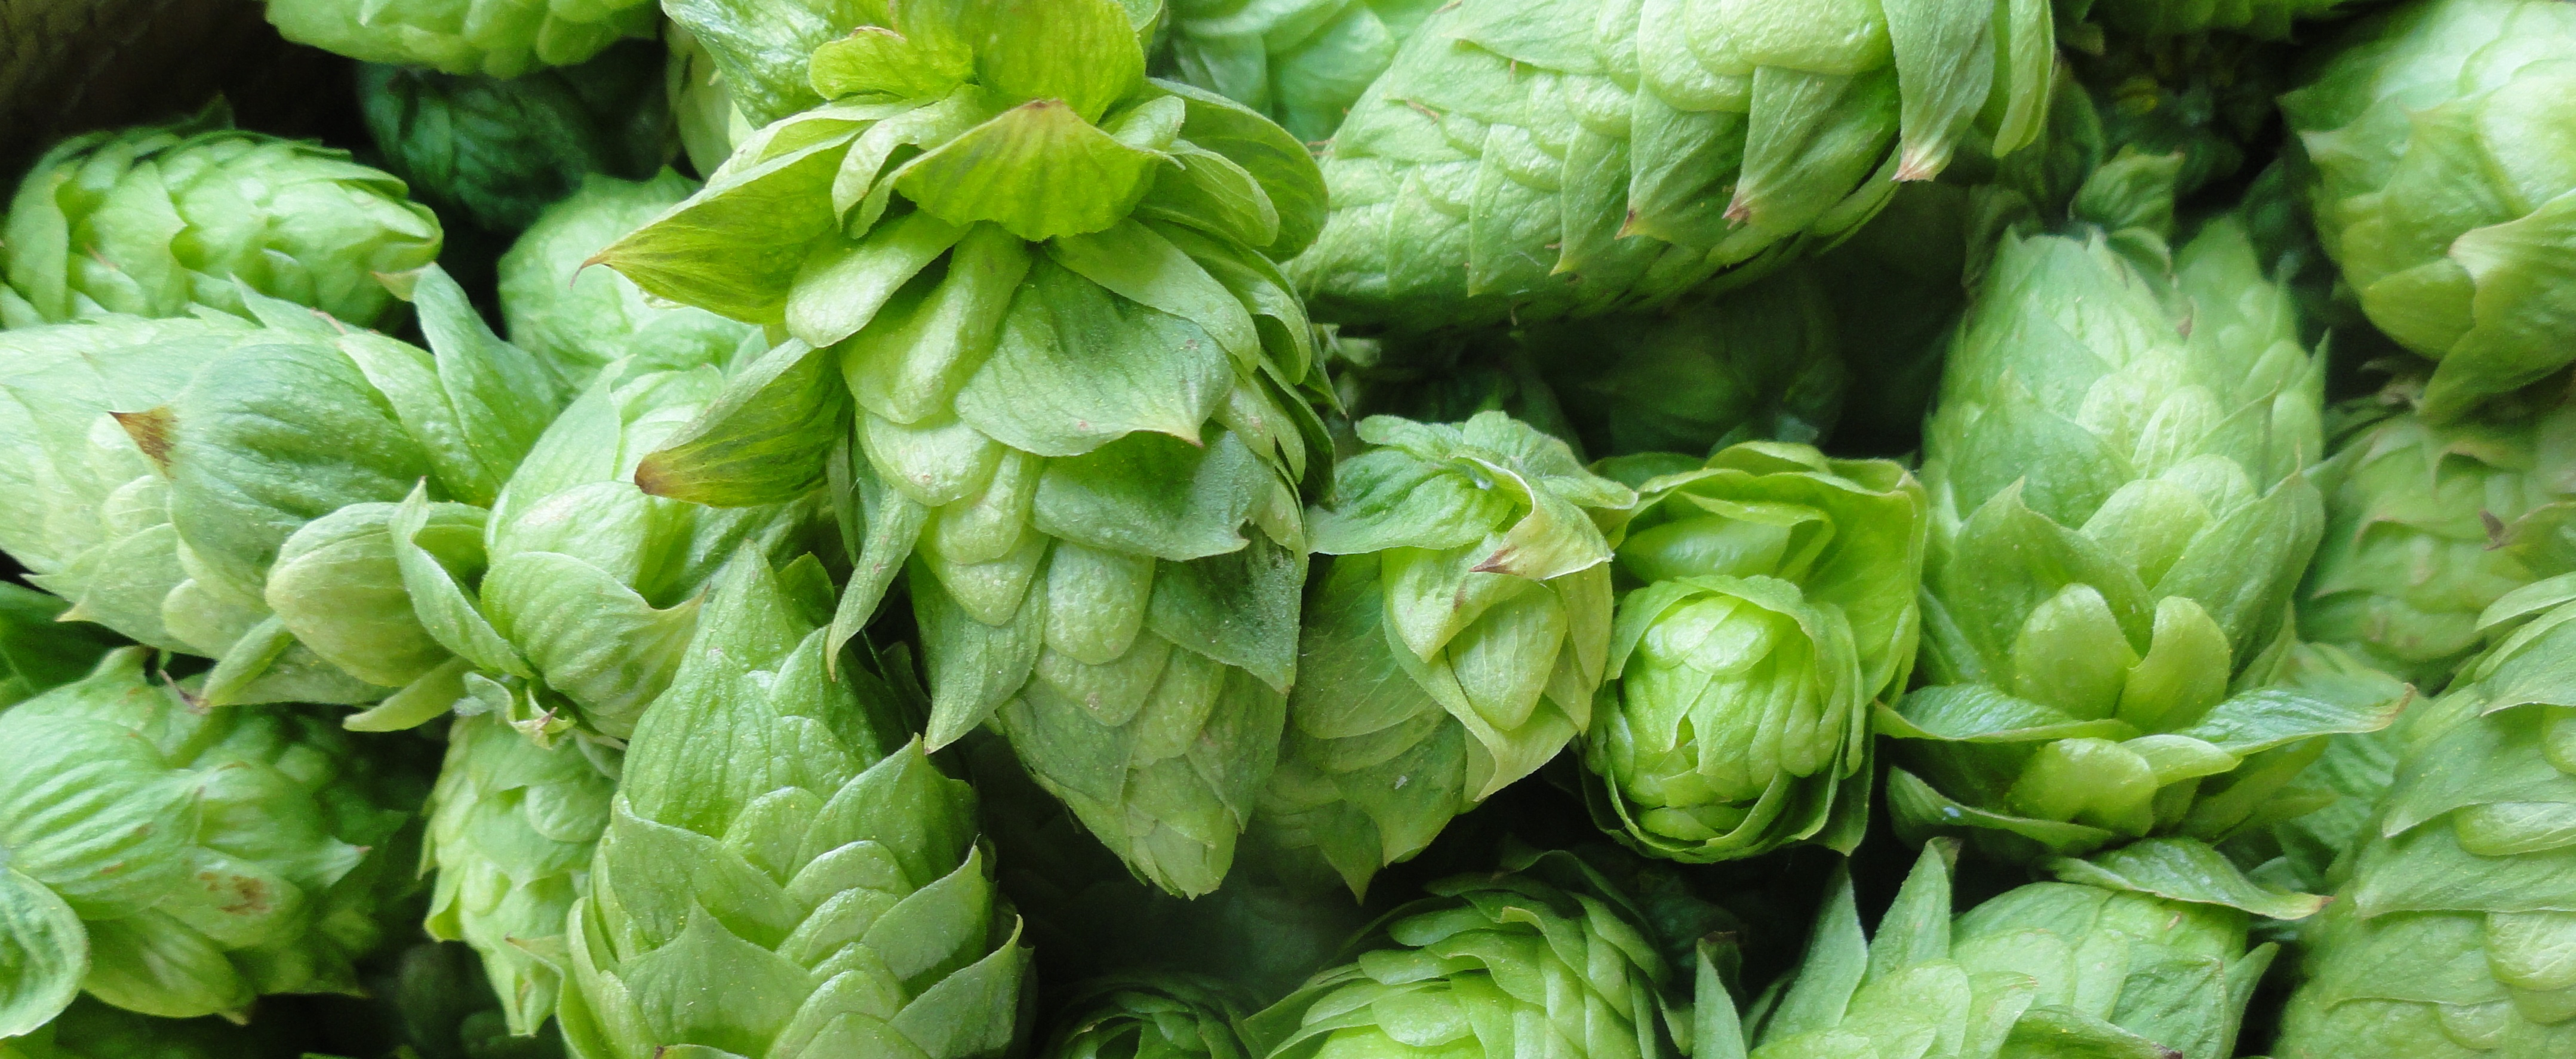 hops_closeup